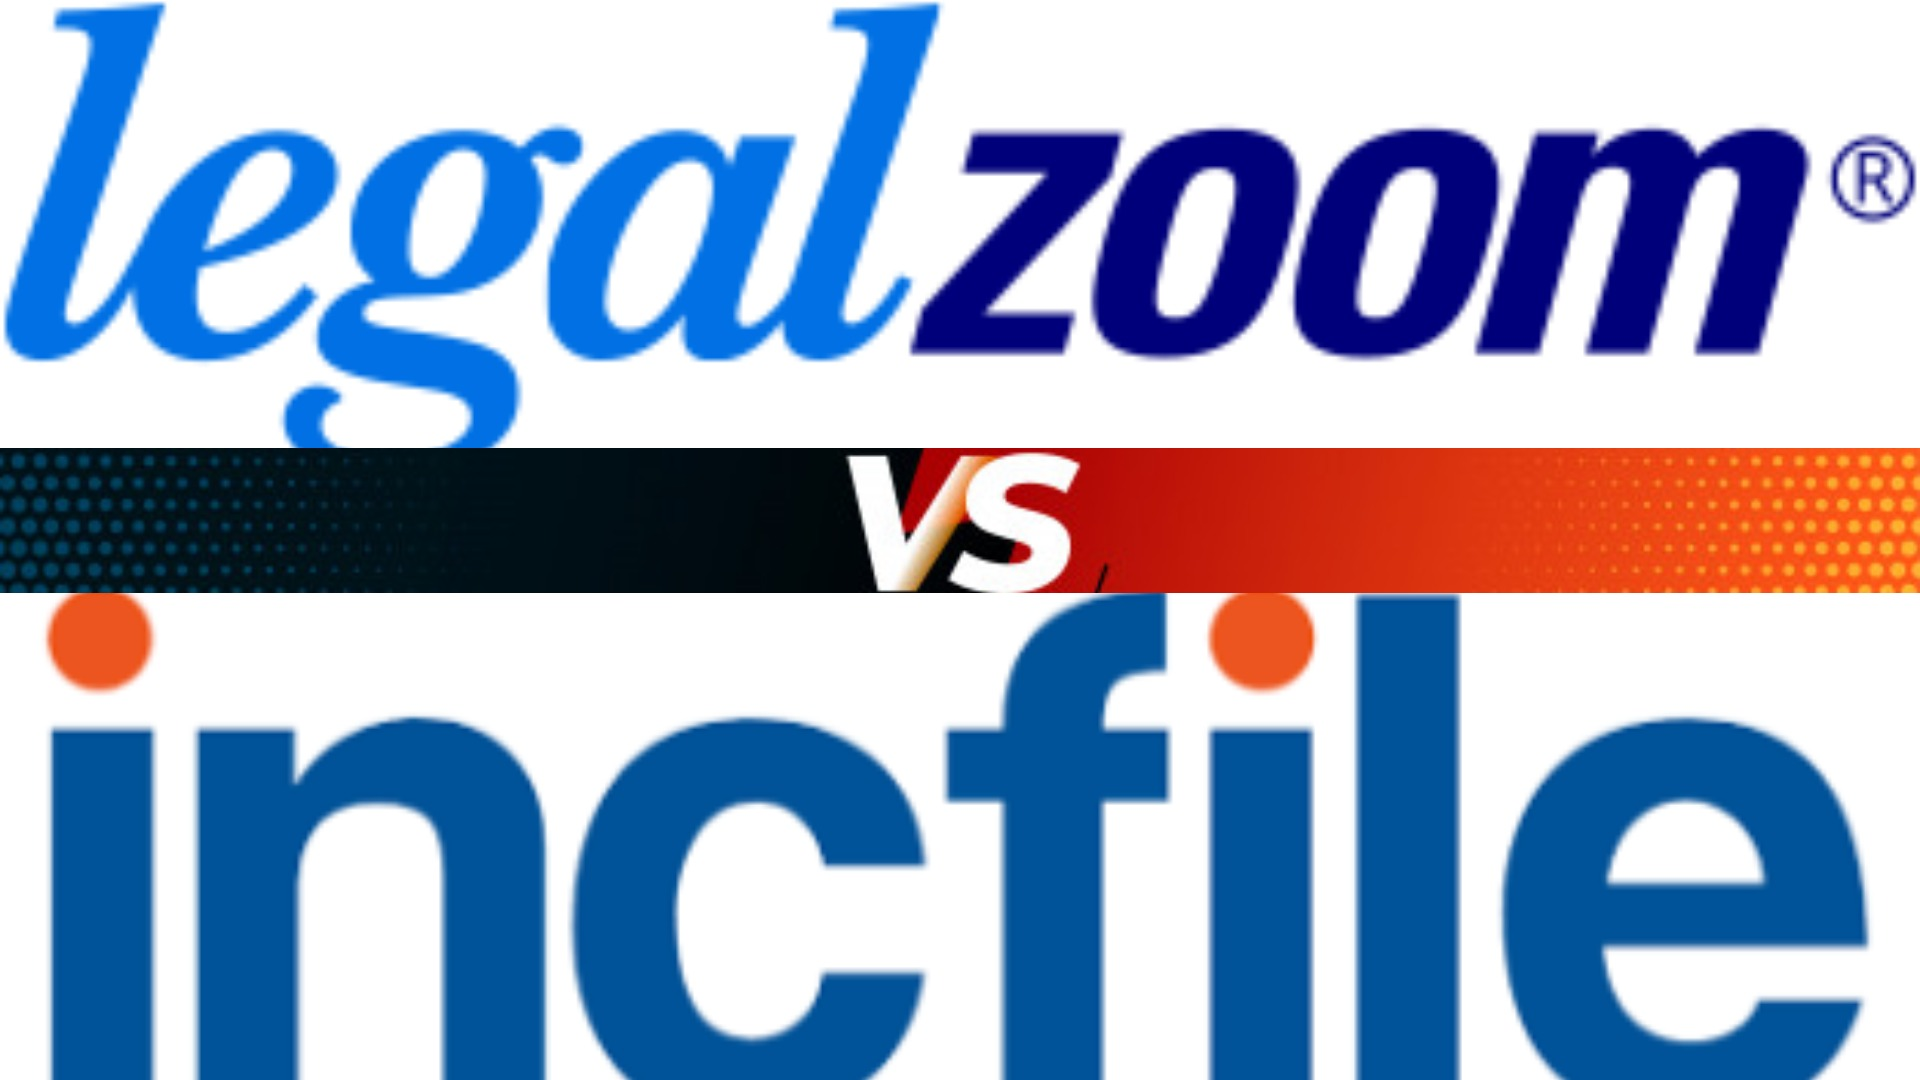 Legalzoom Coupon 2015